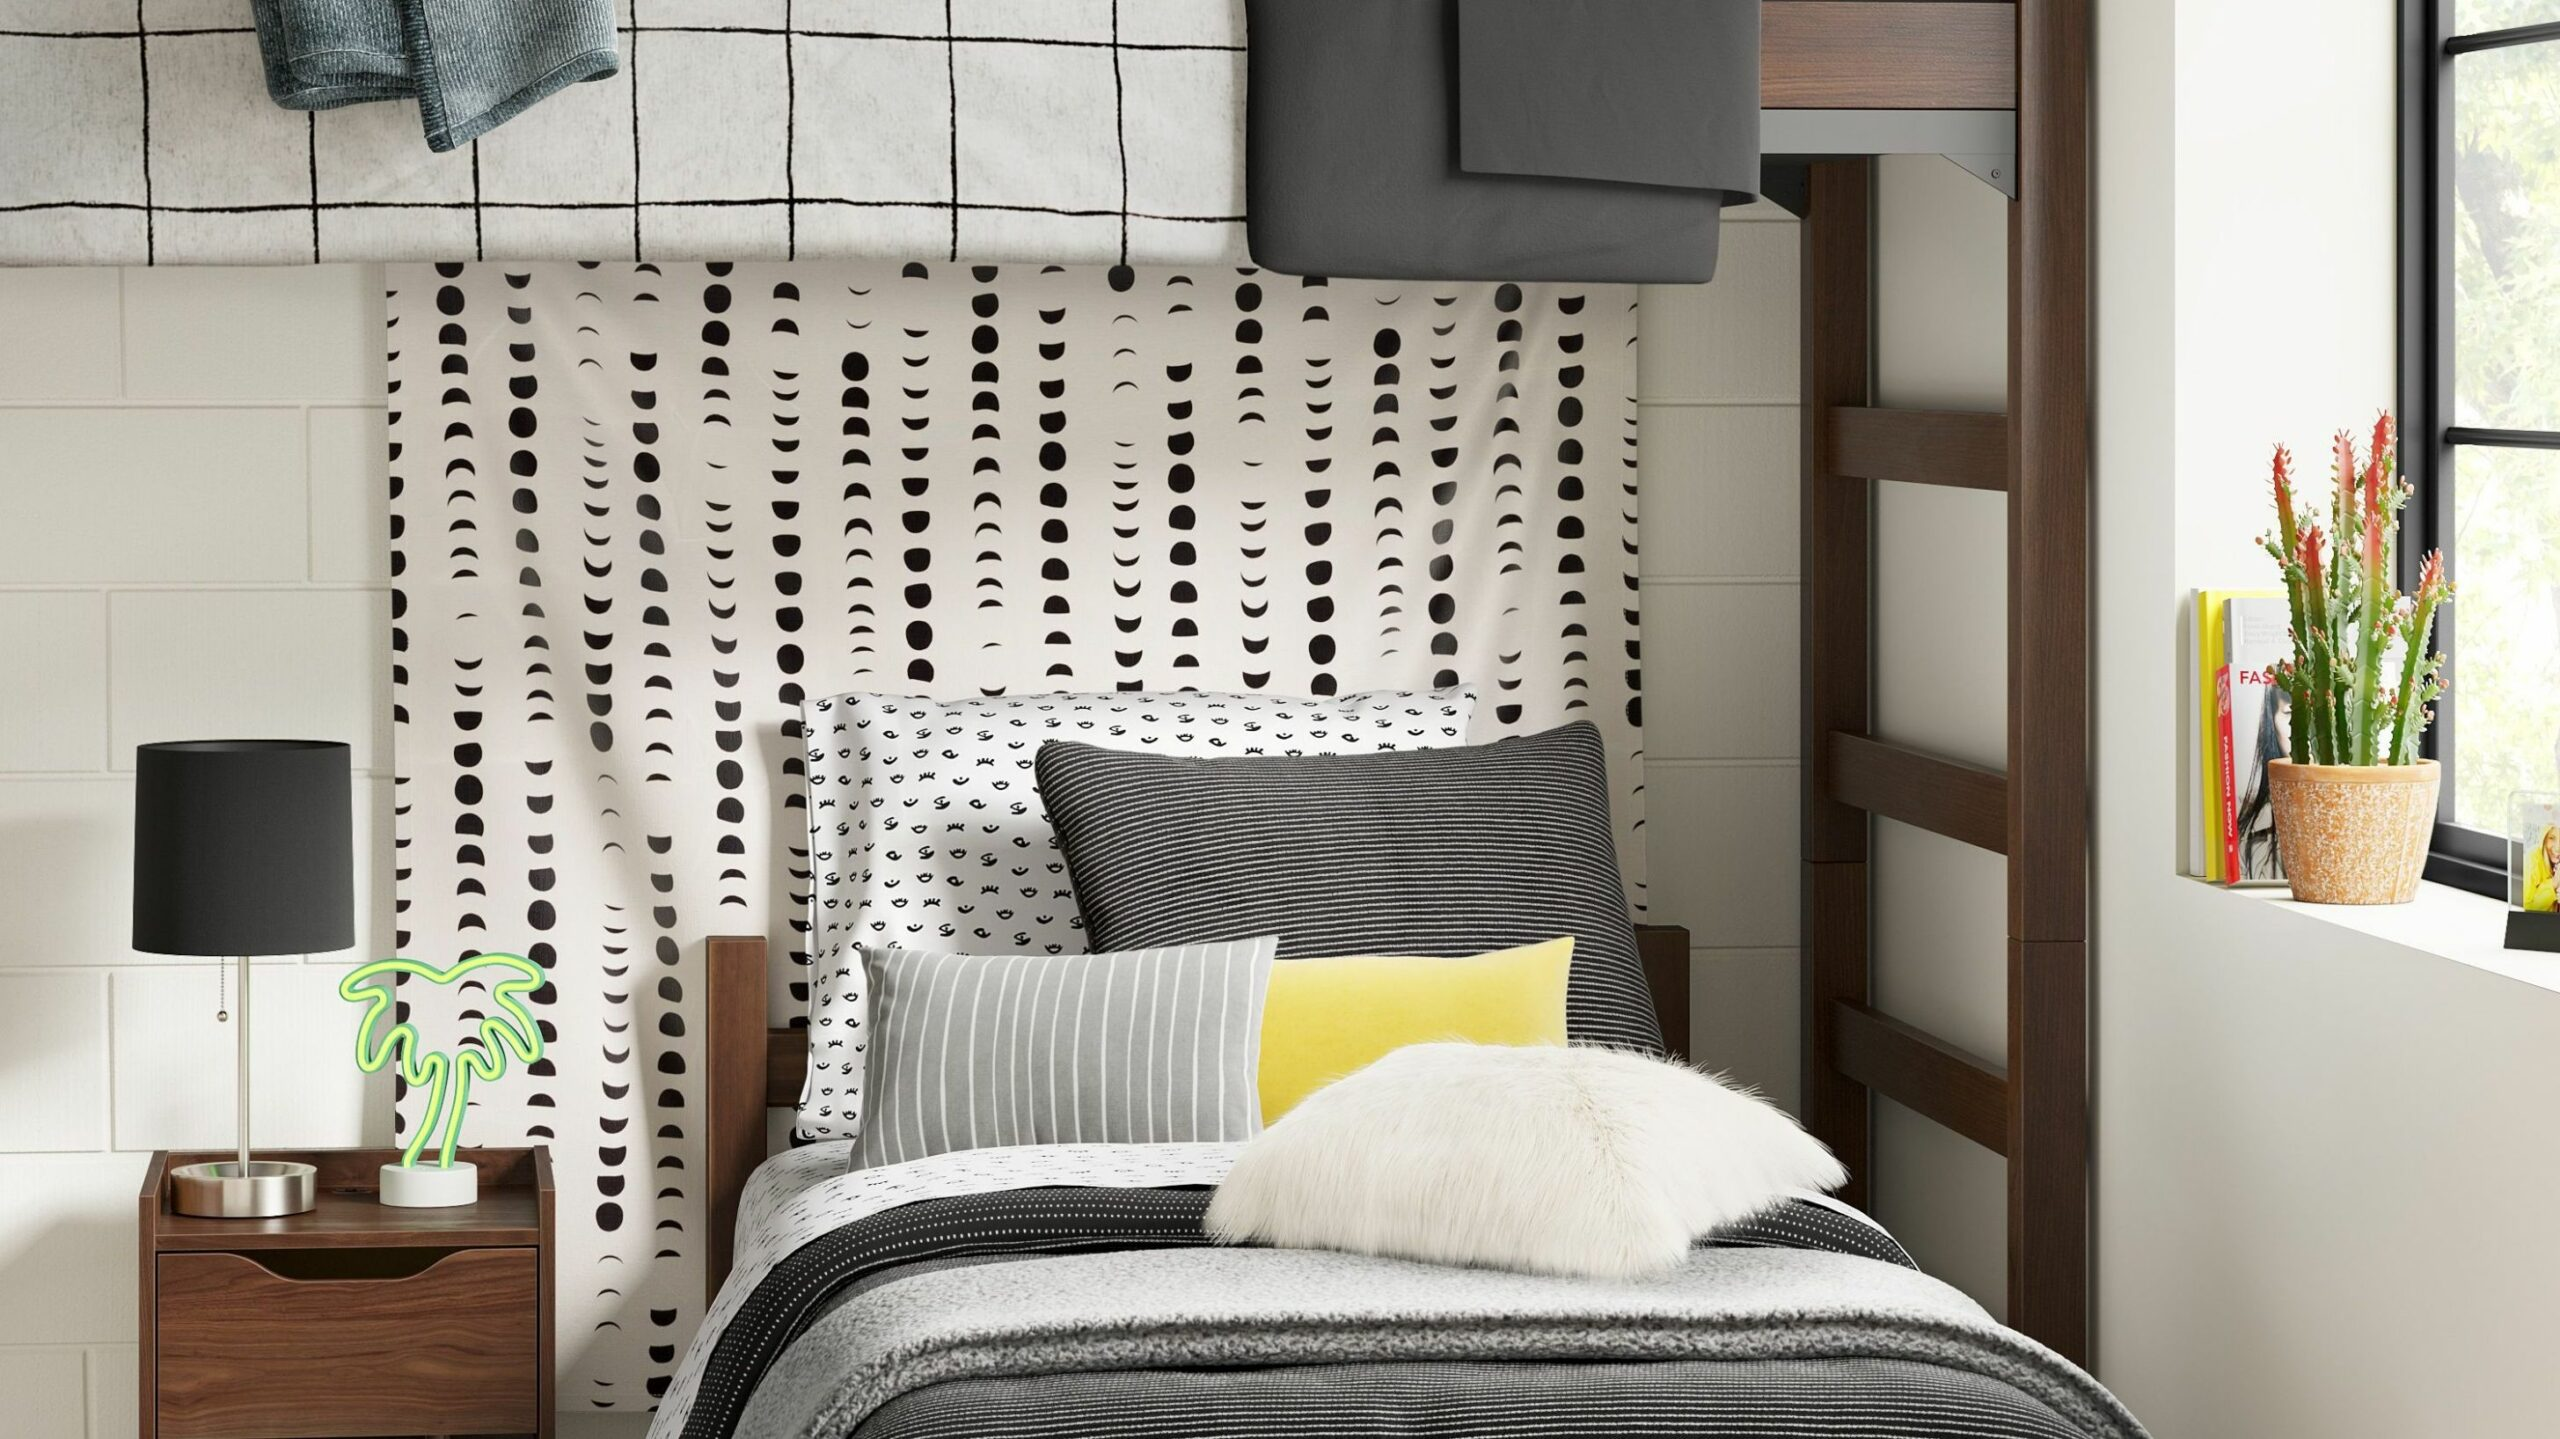 Decorate Your Dorm Room For Less - TangerLife - dorm room design and decor ottawa